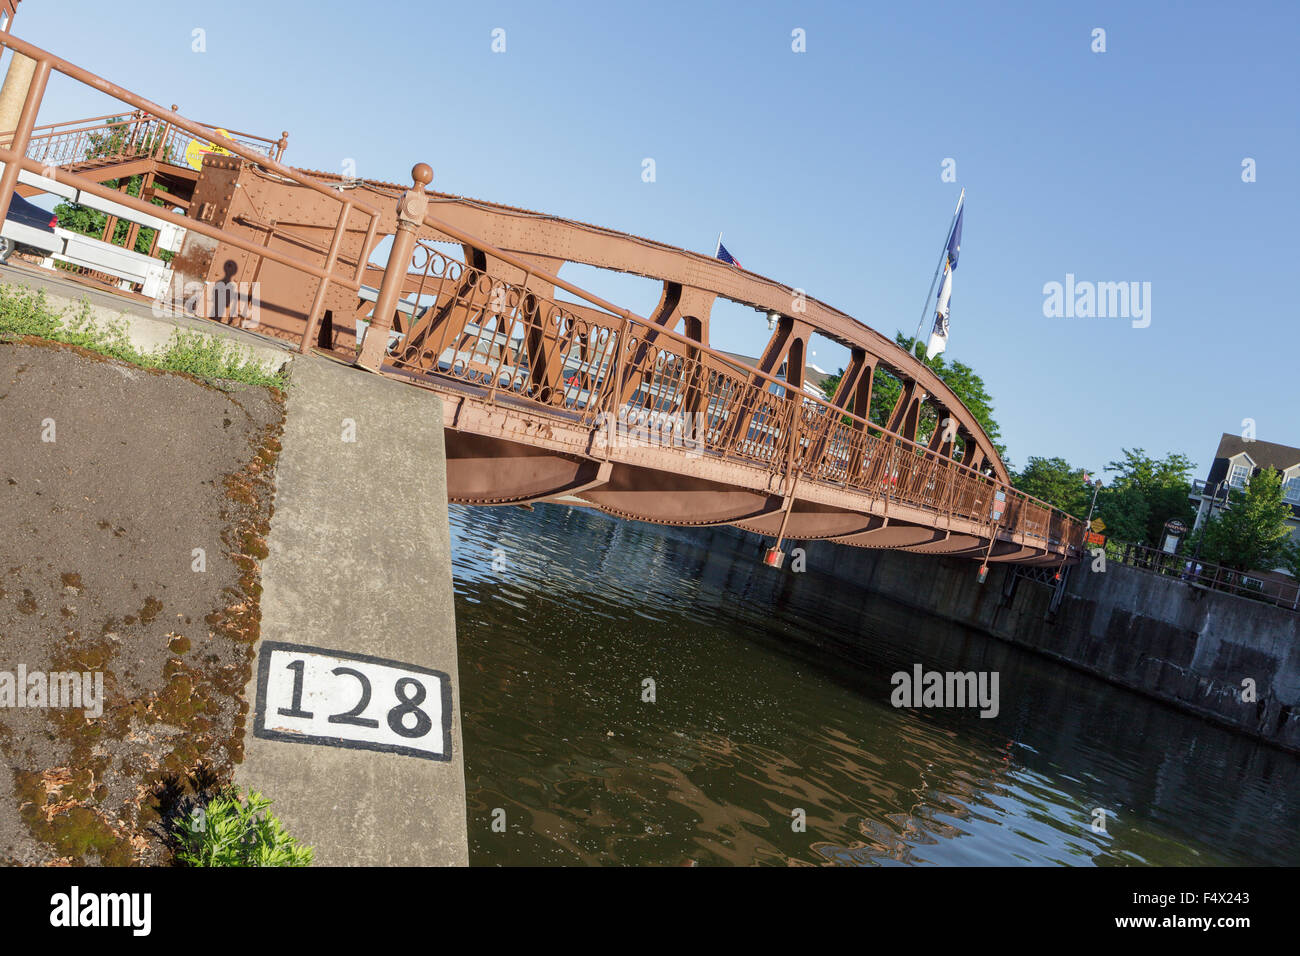 Notable Main Street Lift Bridge over Erie Canal, Fairport, New York State. All 4 corners of bridge are at different - Stock Image